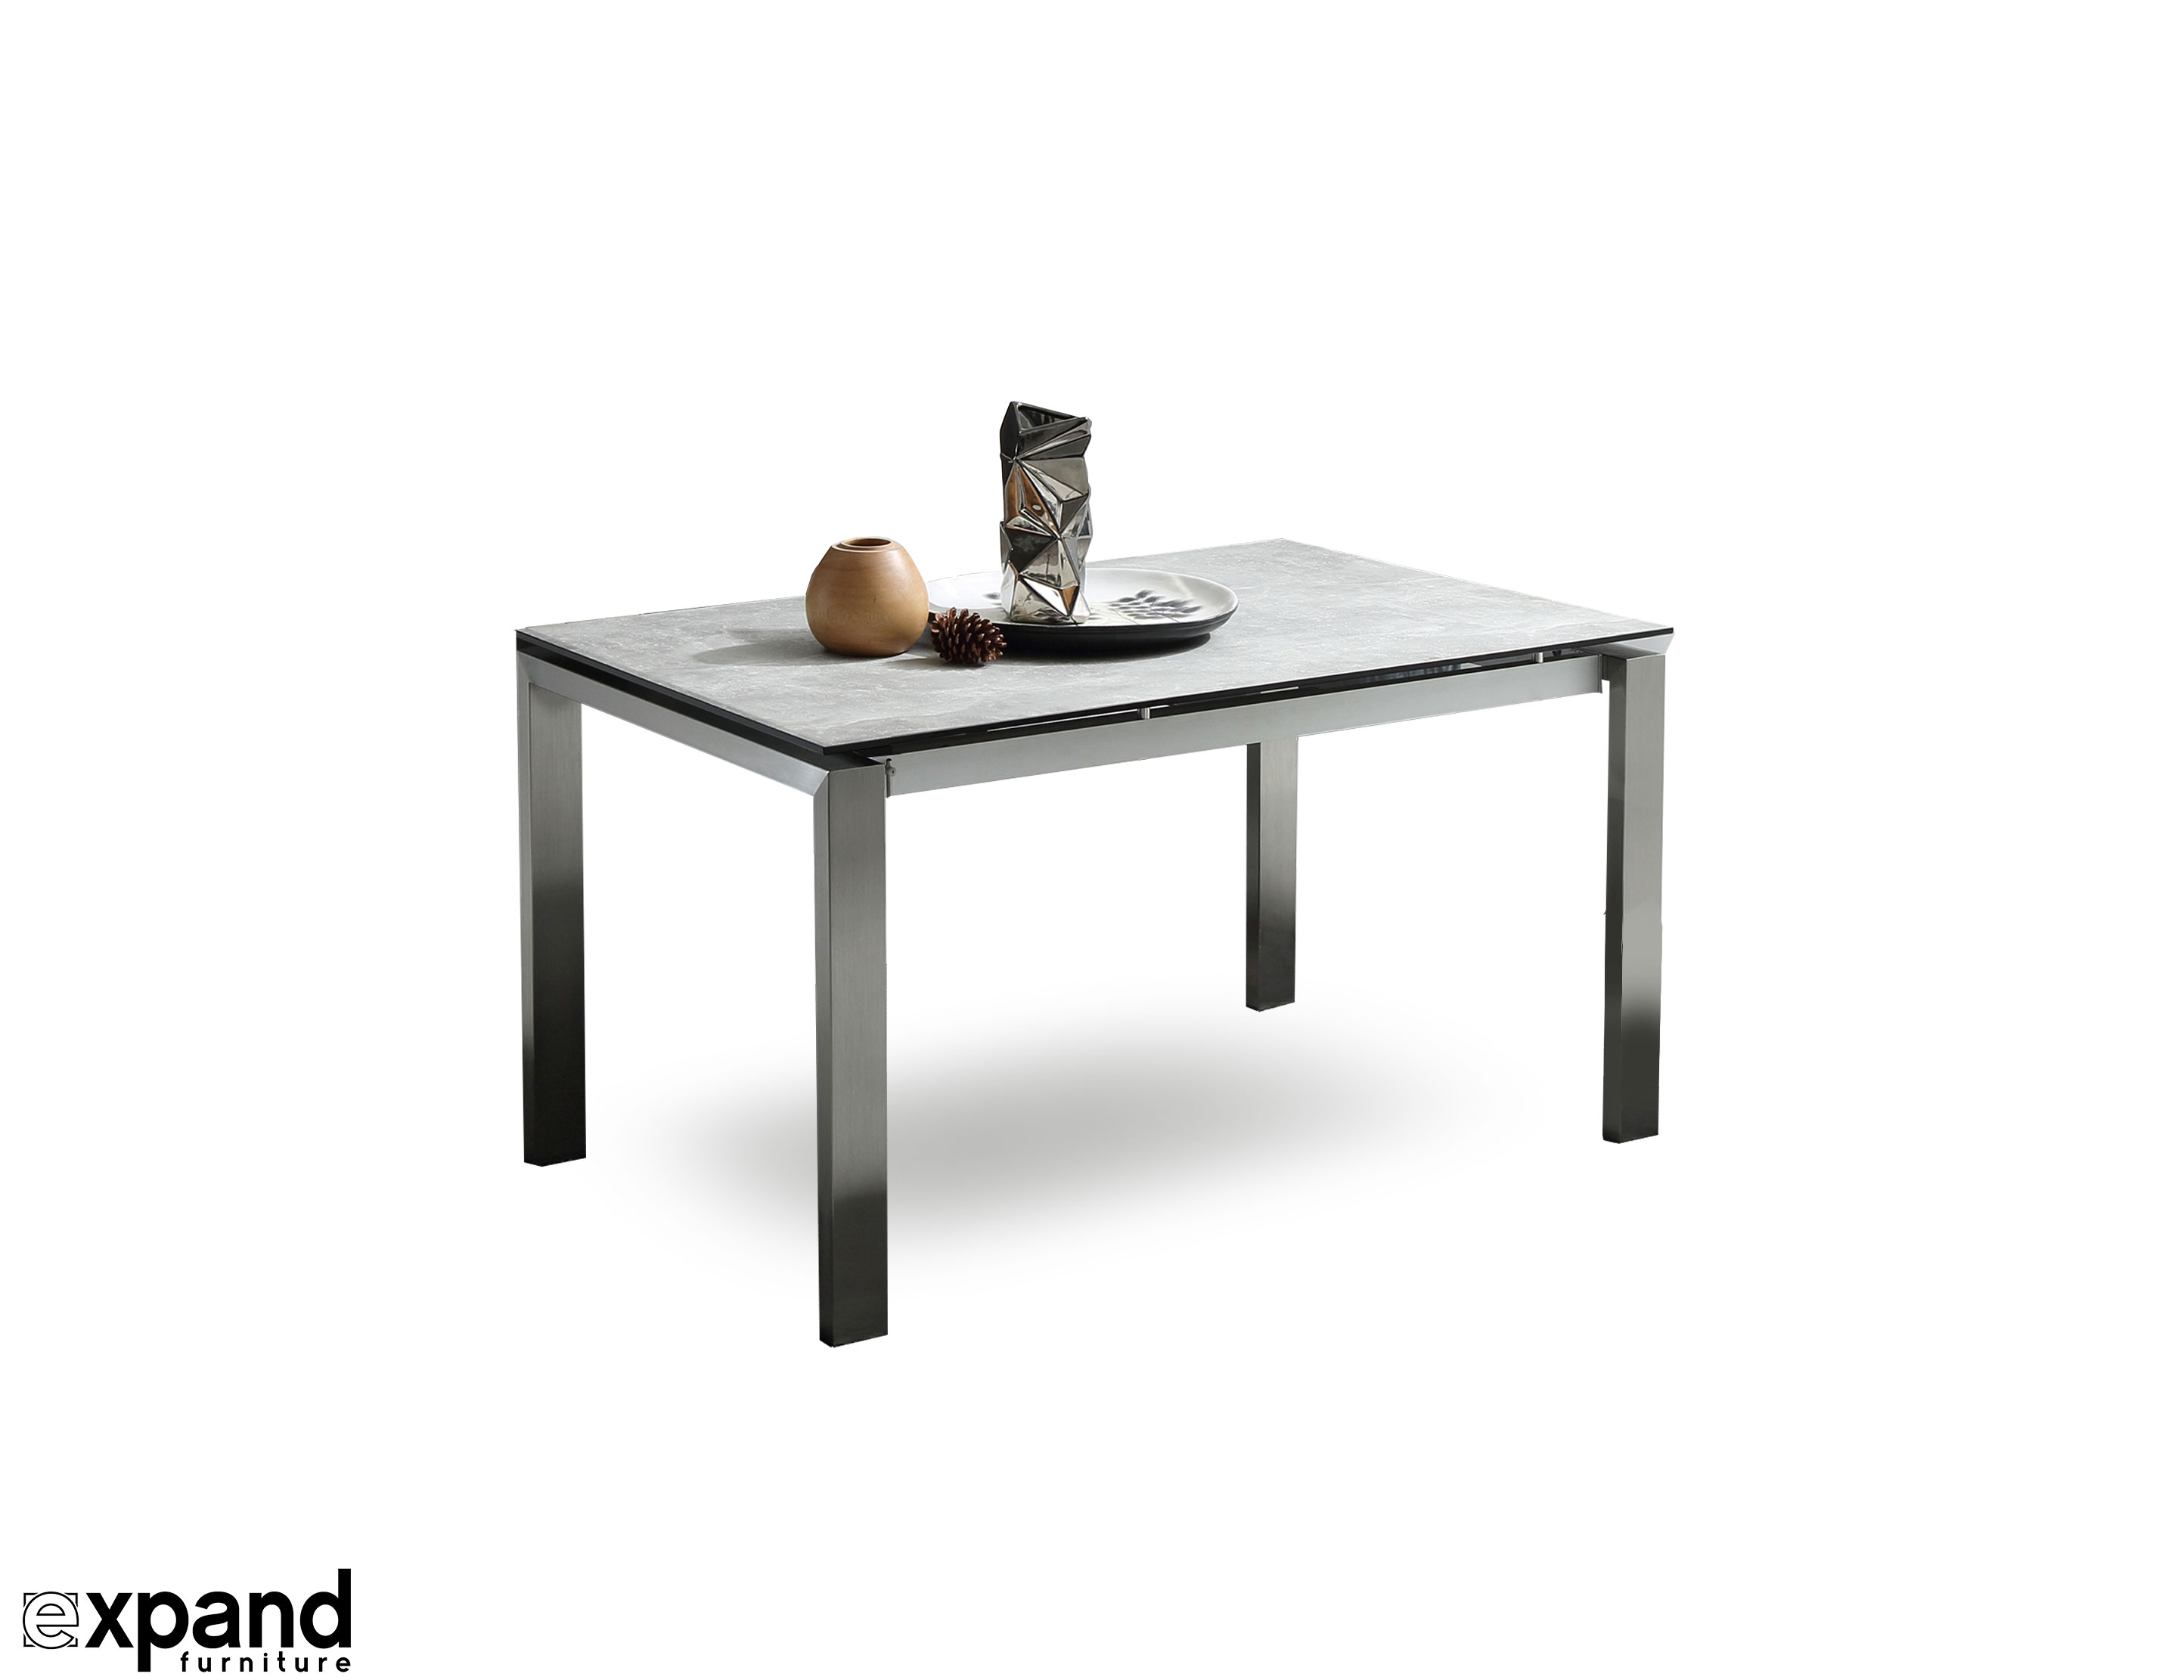 space saving furniture convertible wall beds tables more slate ceramic grey glass extending table steel legs ese accent kitchenette and chairs large silver lamps carpet door